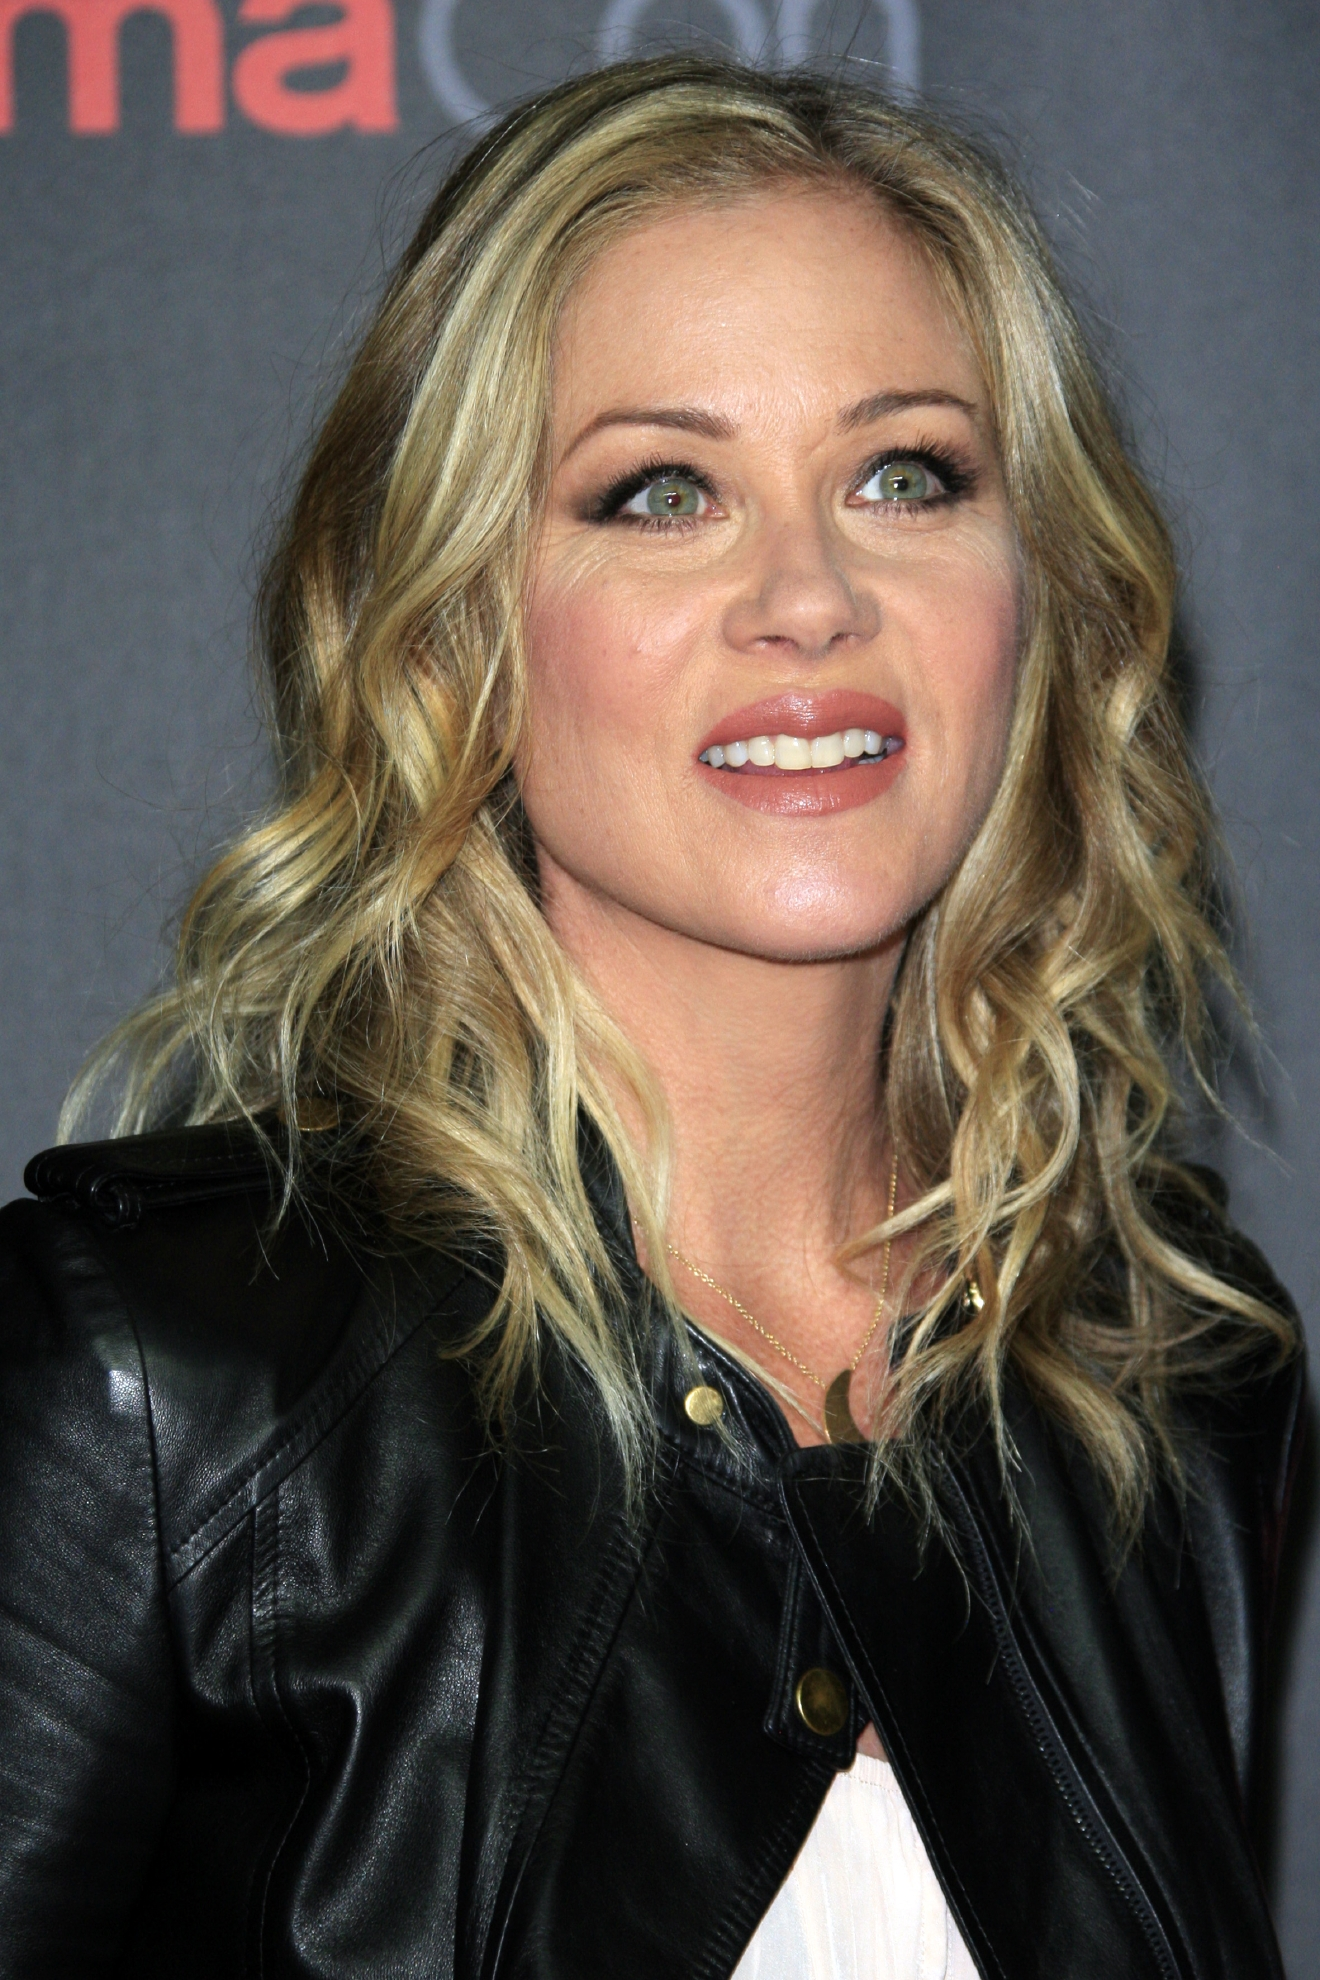 2015 CinemaCon - 'The Big Picture' at Caesars Palace Hotel & Casino - Arrivals                                    Featuring: Christina Applegate                  Where: Las Vegas, Nevada, United States                  When: 21 Apr 2015                  Credit: Dave Bedrosian/Future Image/WENN.com                                    **Not available for publication in Germany, Poland, Russia, Hungary, Slovenia, Czech Republic, Serbia, Croatia, Slovakia**